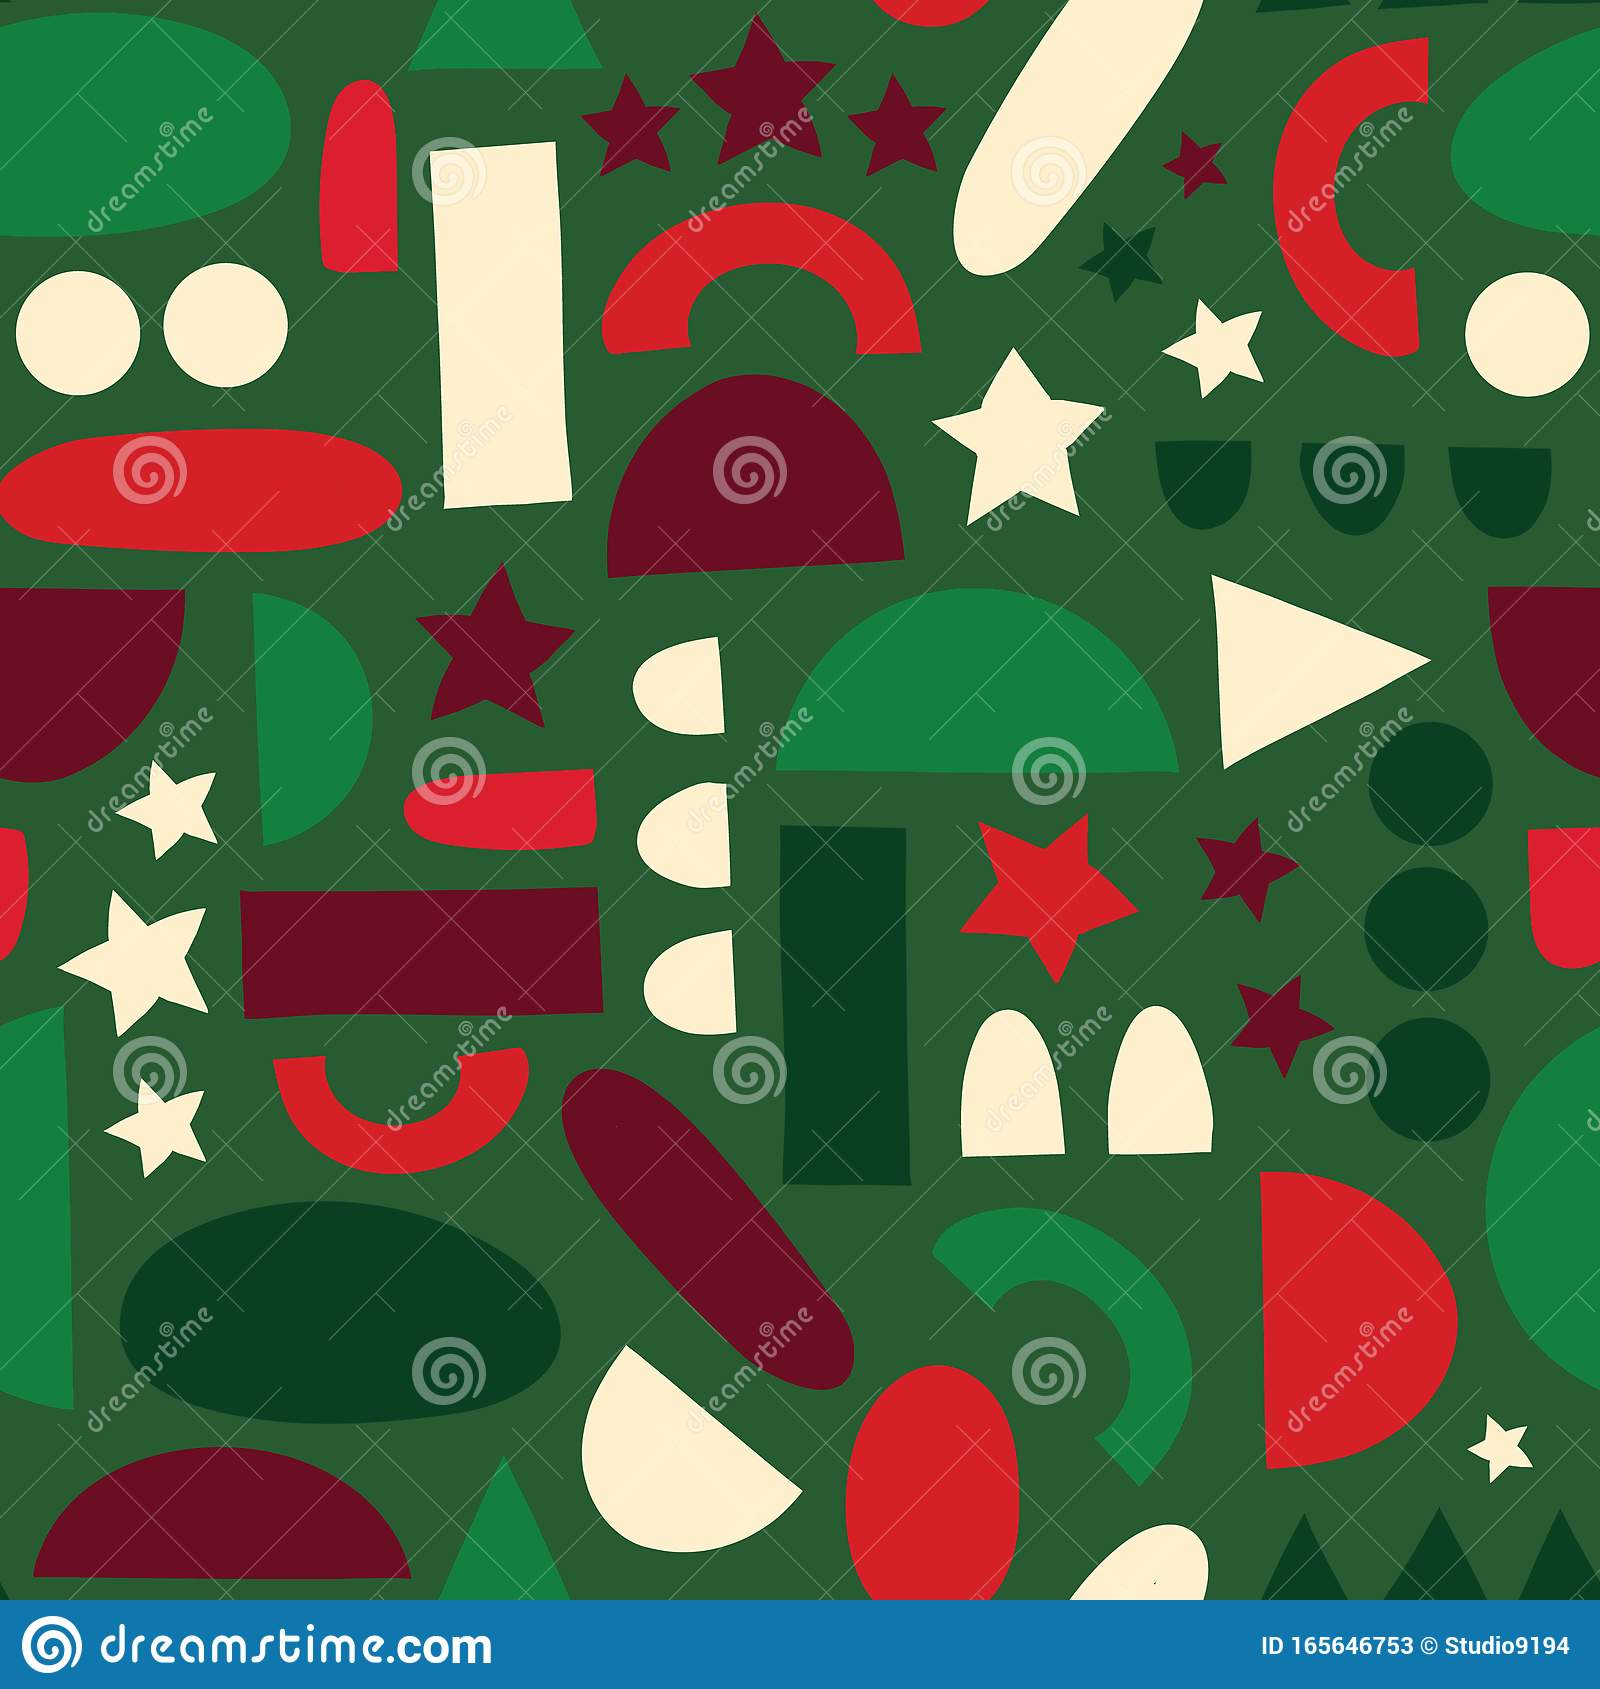 Abstract Shapes Background In Christmas Colors Seamless